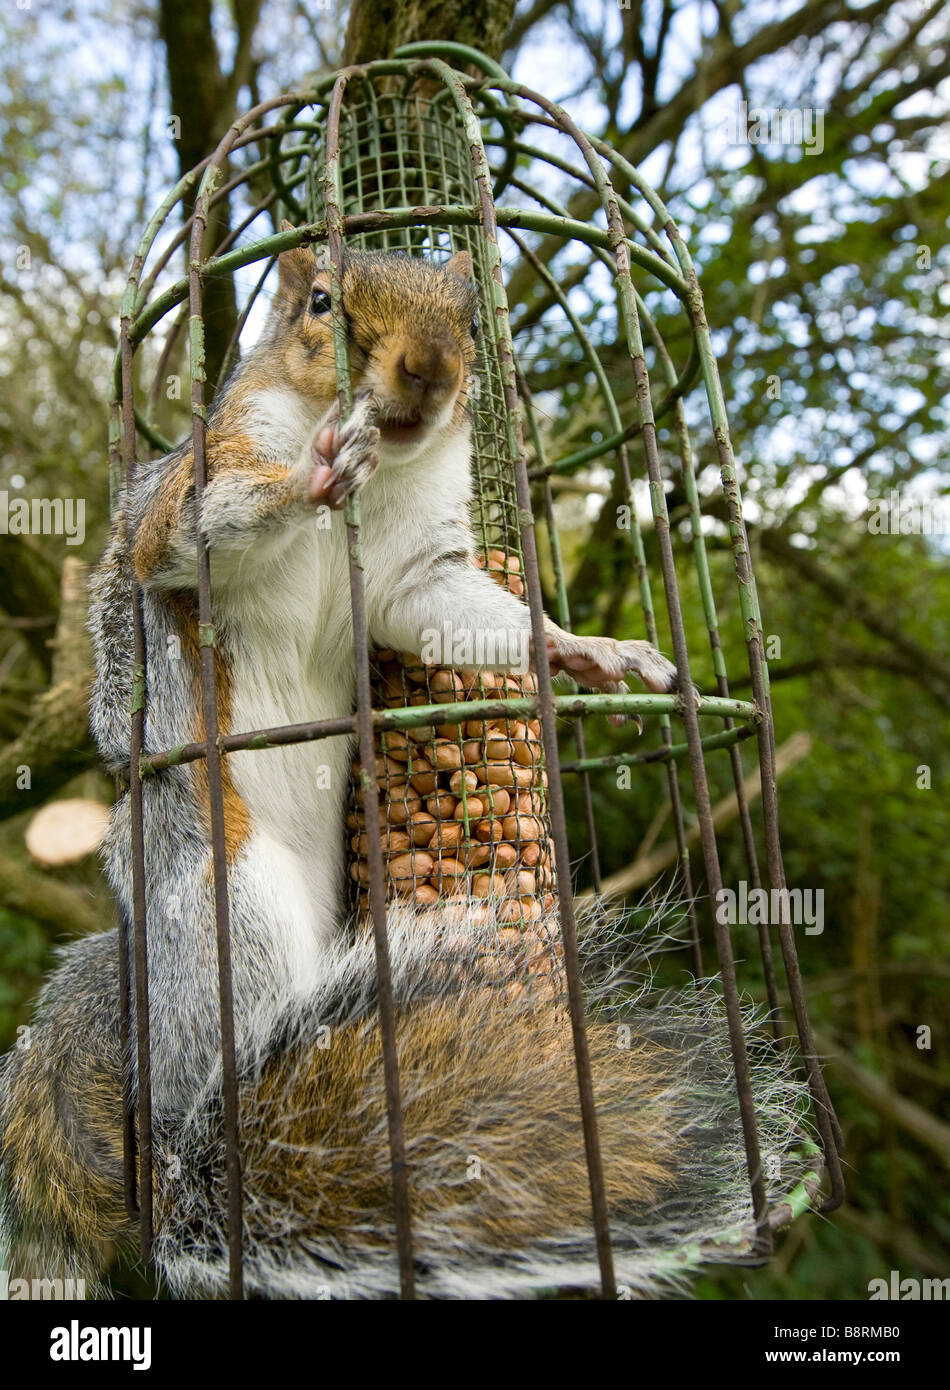 grey squirrel trapped inside a squirrel proof bird feeder uk september stock photo - Squirrel Proof Bird Feeders